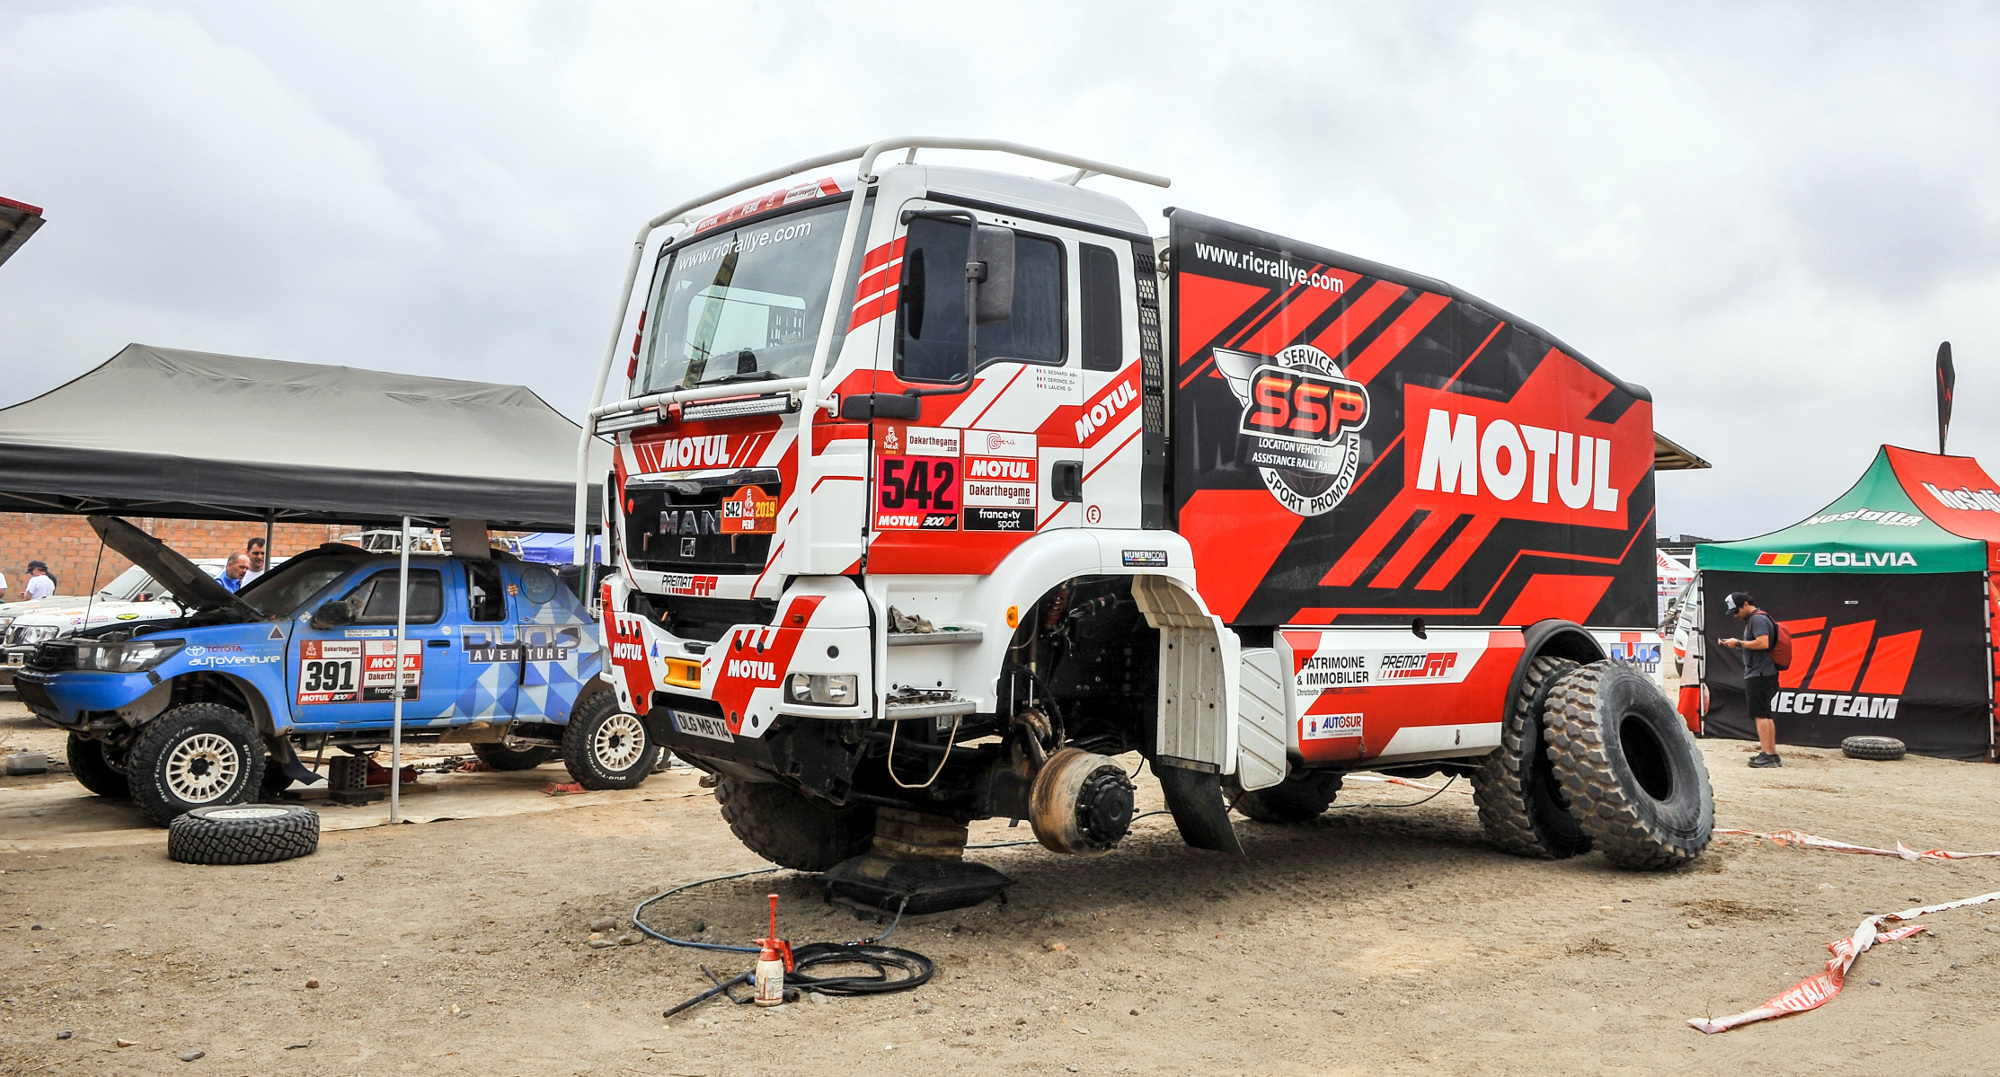 542 BESNARD Sylvain (fra); LALICHE Sylvain (fra); DERONCE Florence (fra); Man; Team SSP; Motul; Truck; Camion; mecaniciens mechanics during the Dakar 2019; Rest day Arequipa; peru; on january 12 - Photo DPPI